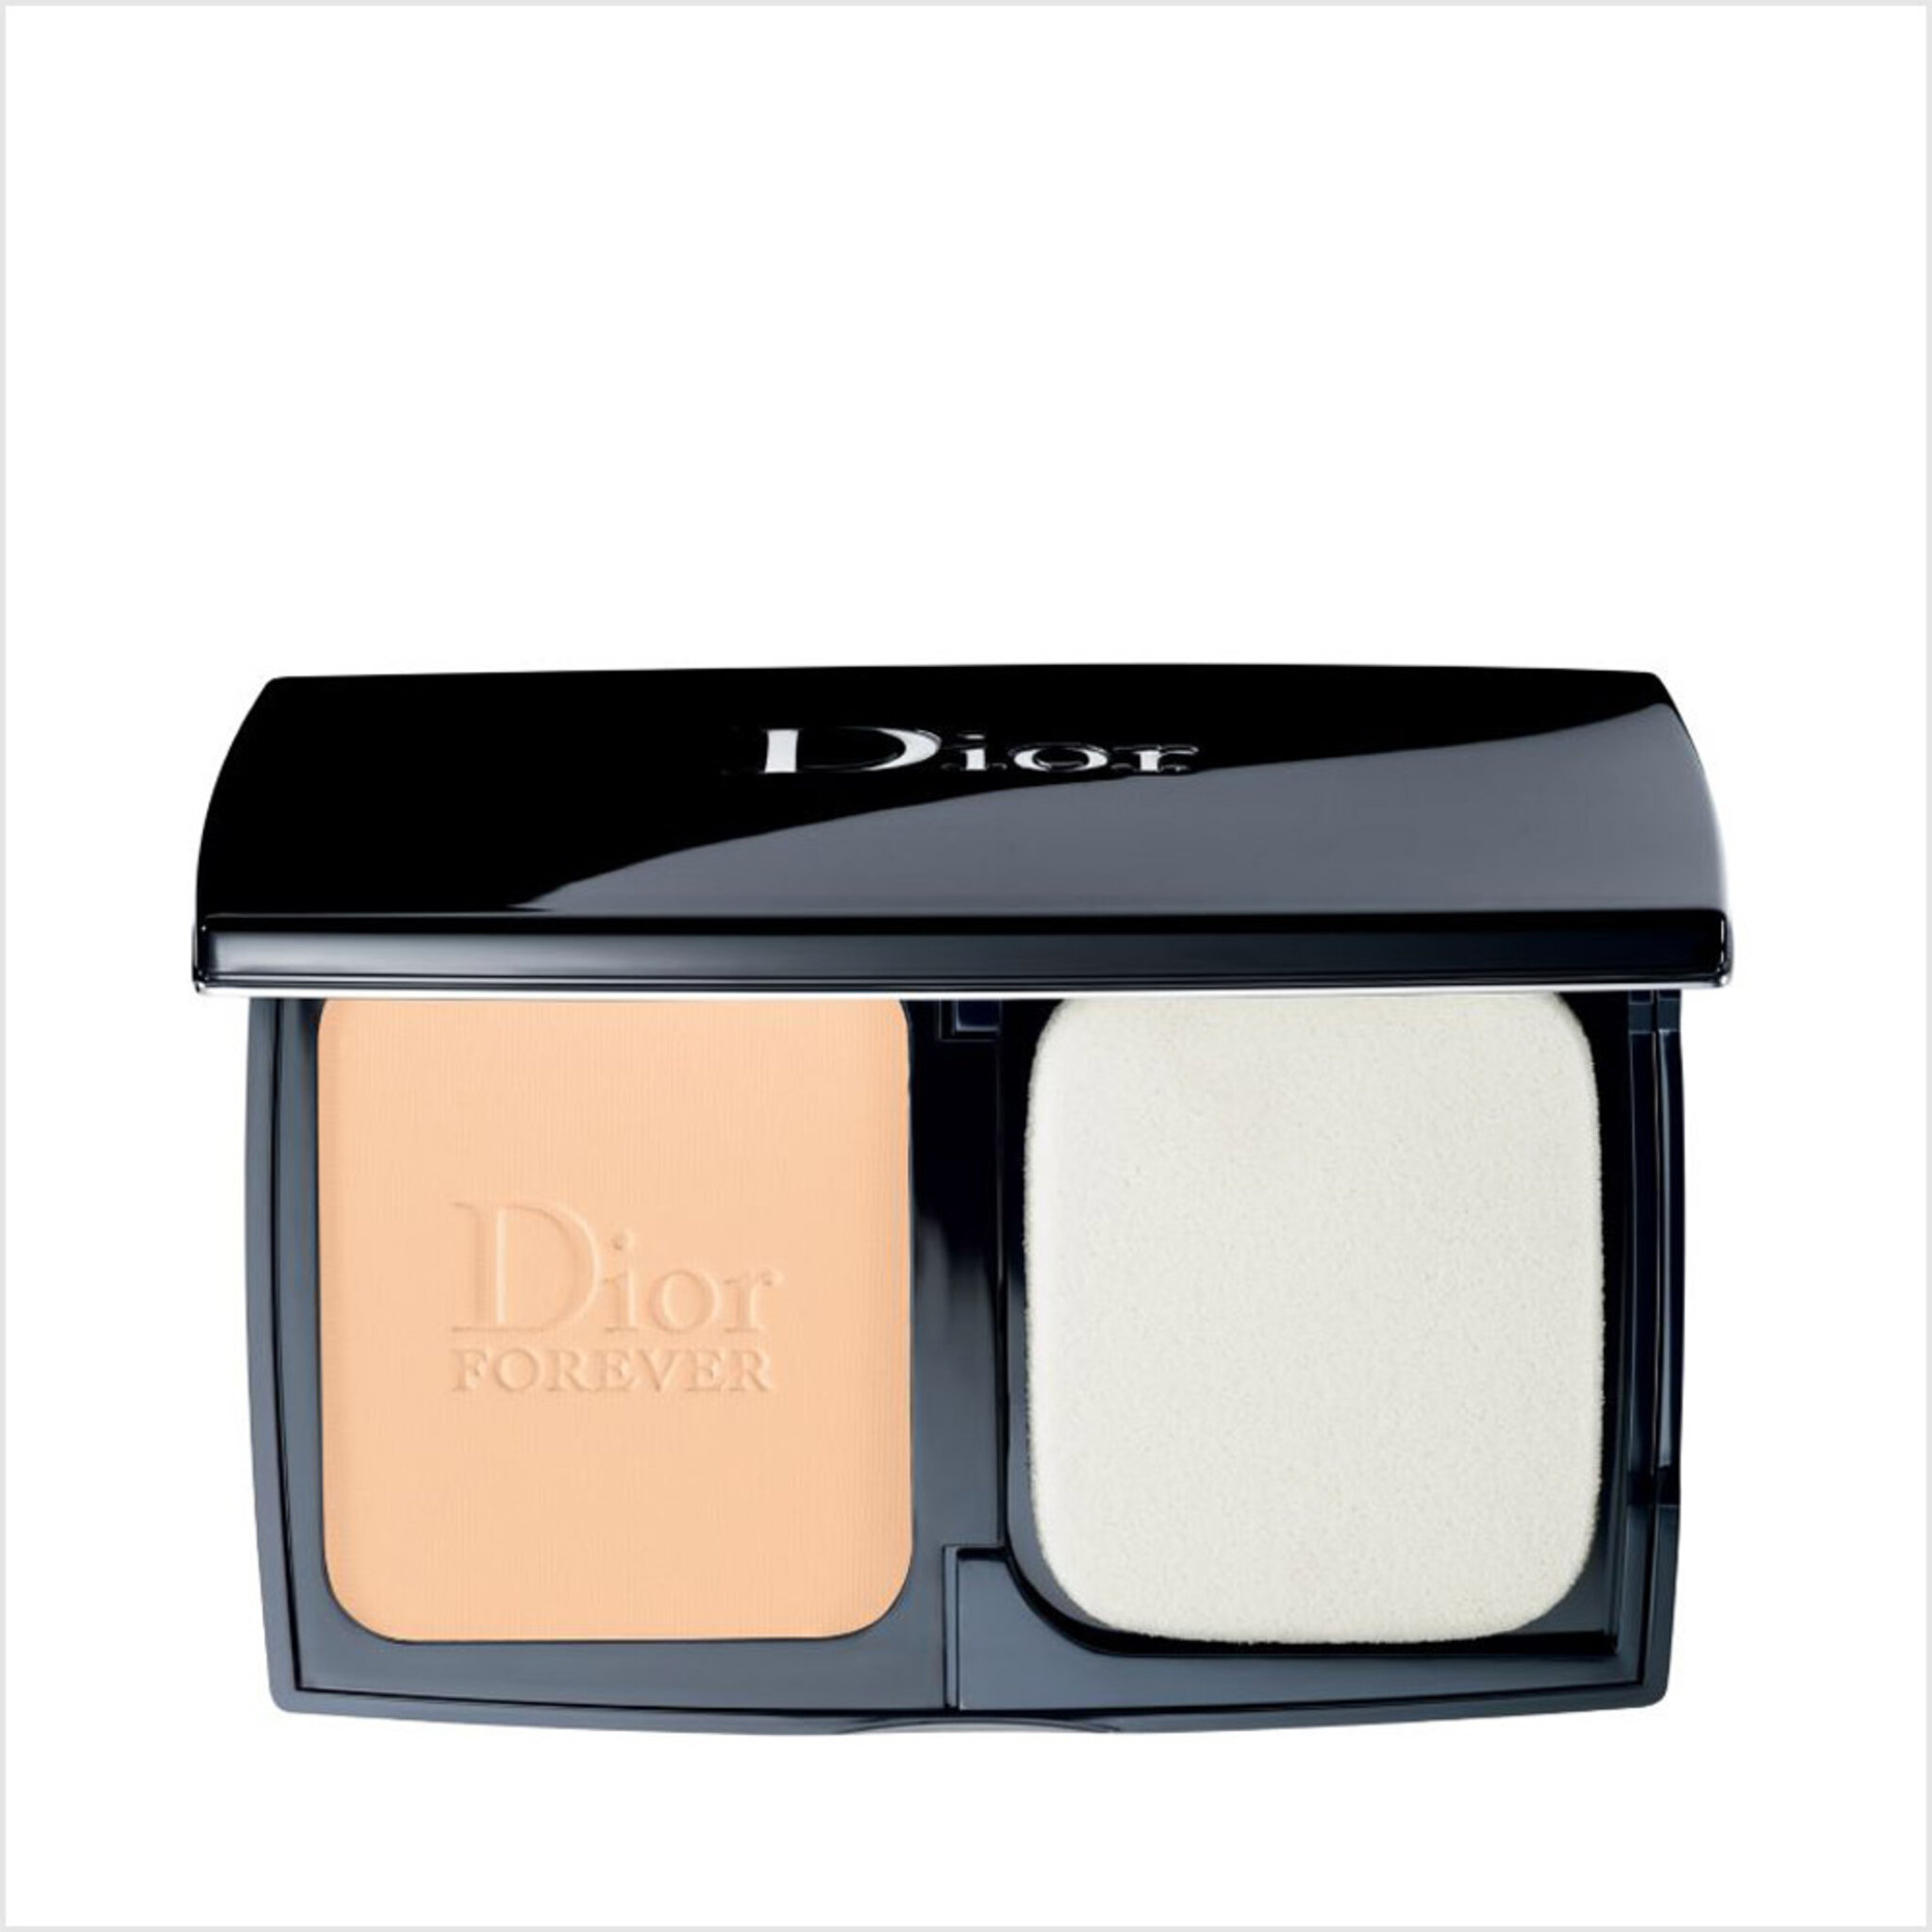 Diorskin Forever Foundation Compact